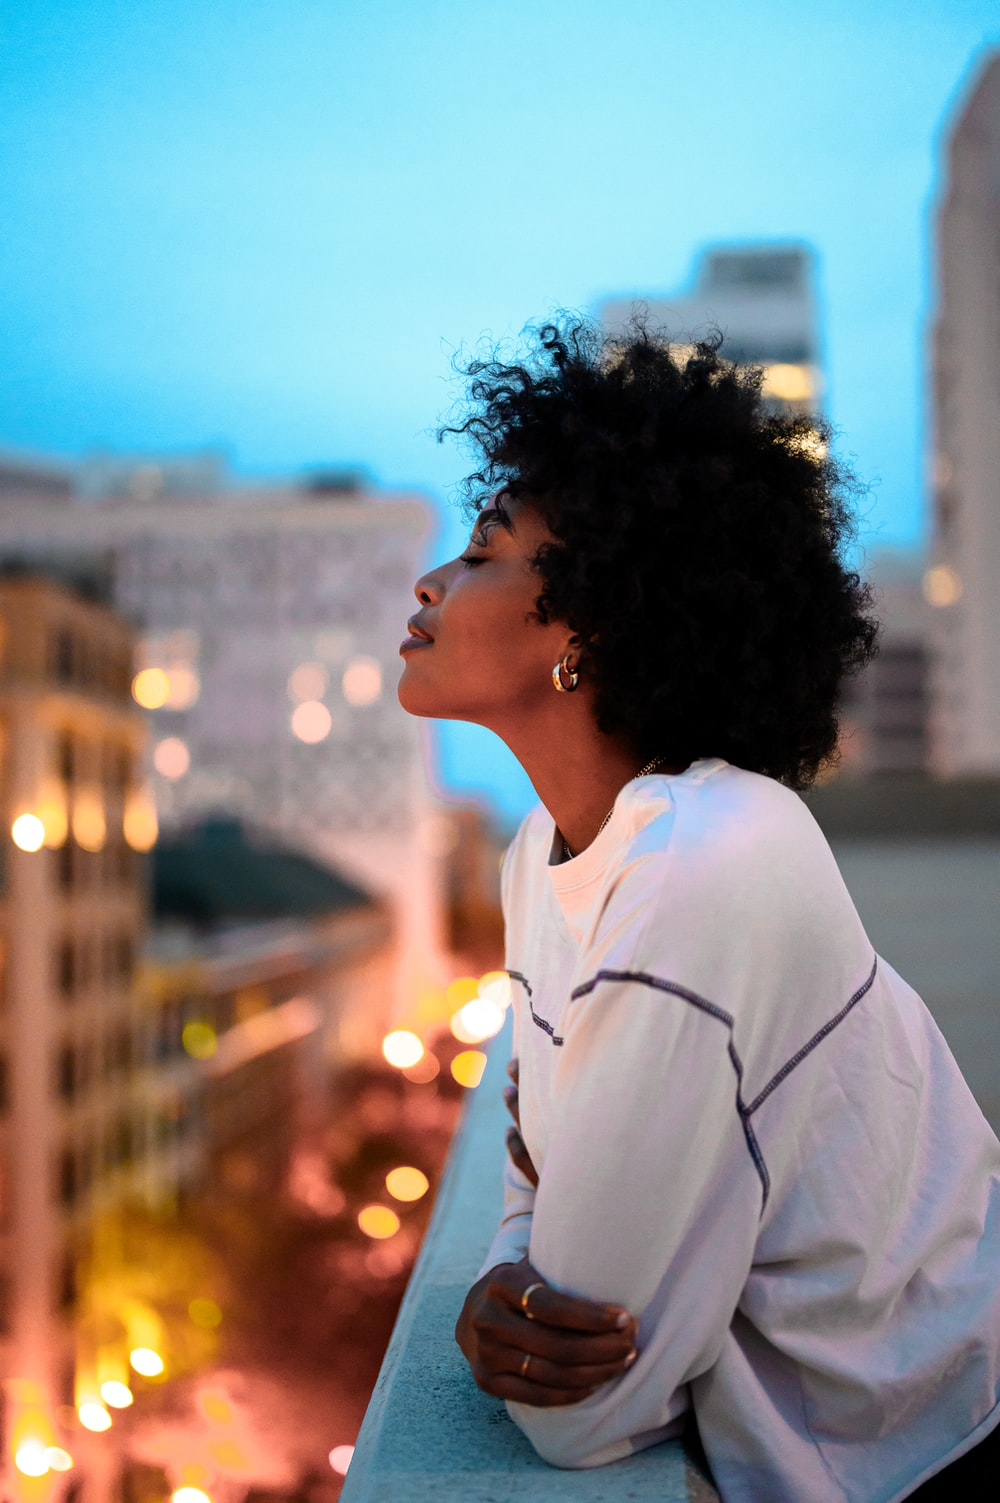 woman in white collared shirt looking at the city during night time